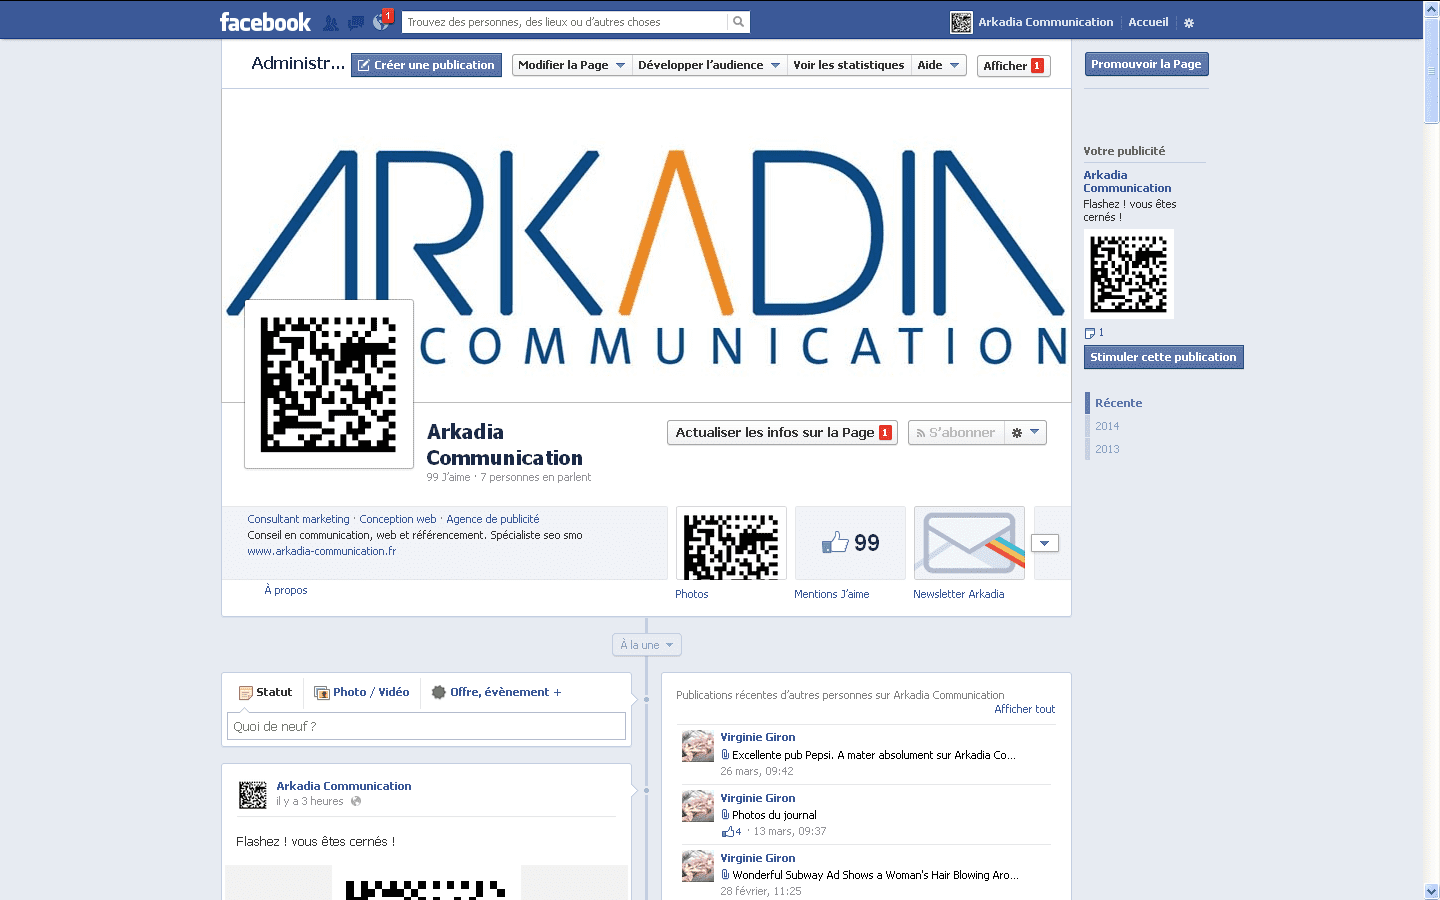 fanpage facebook arkadia communication